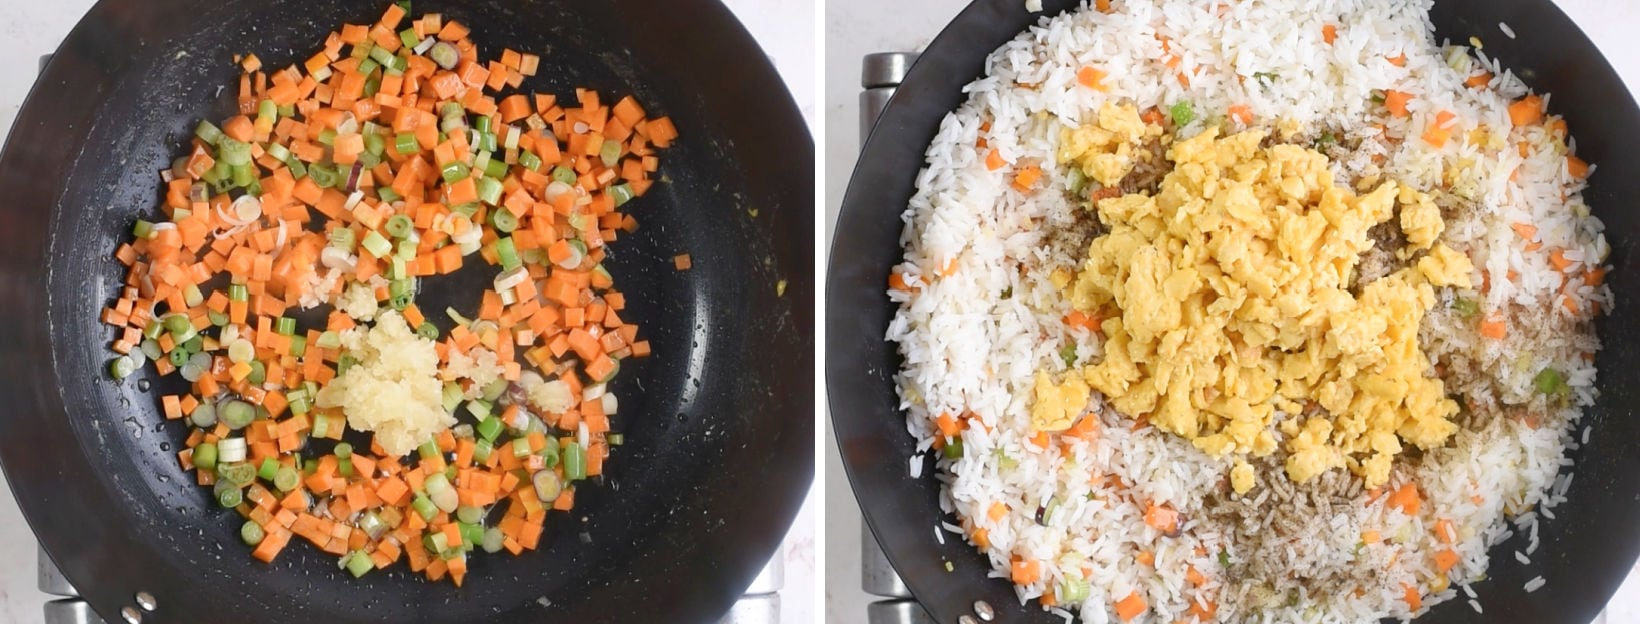 toss onion, garlic, veggies, rice, egg and sauces in a wok is the second step to make the fried rice.